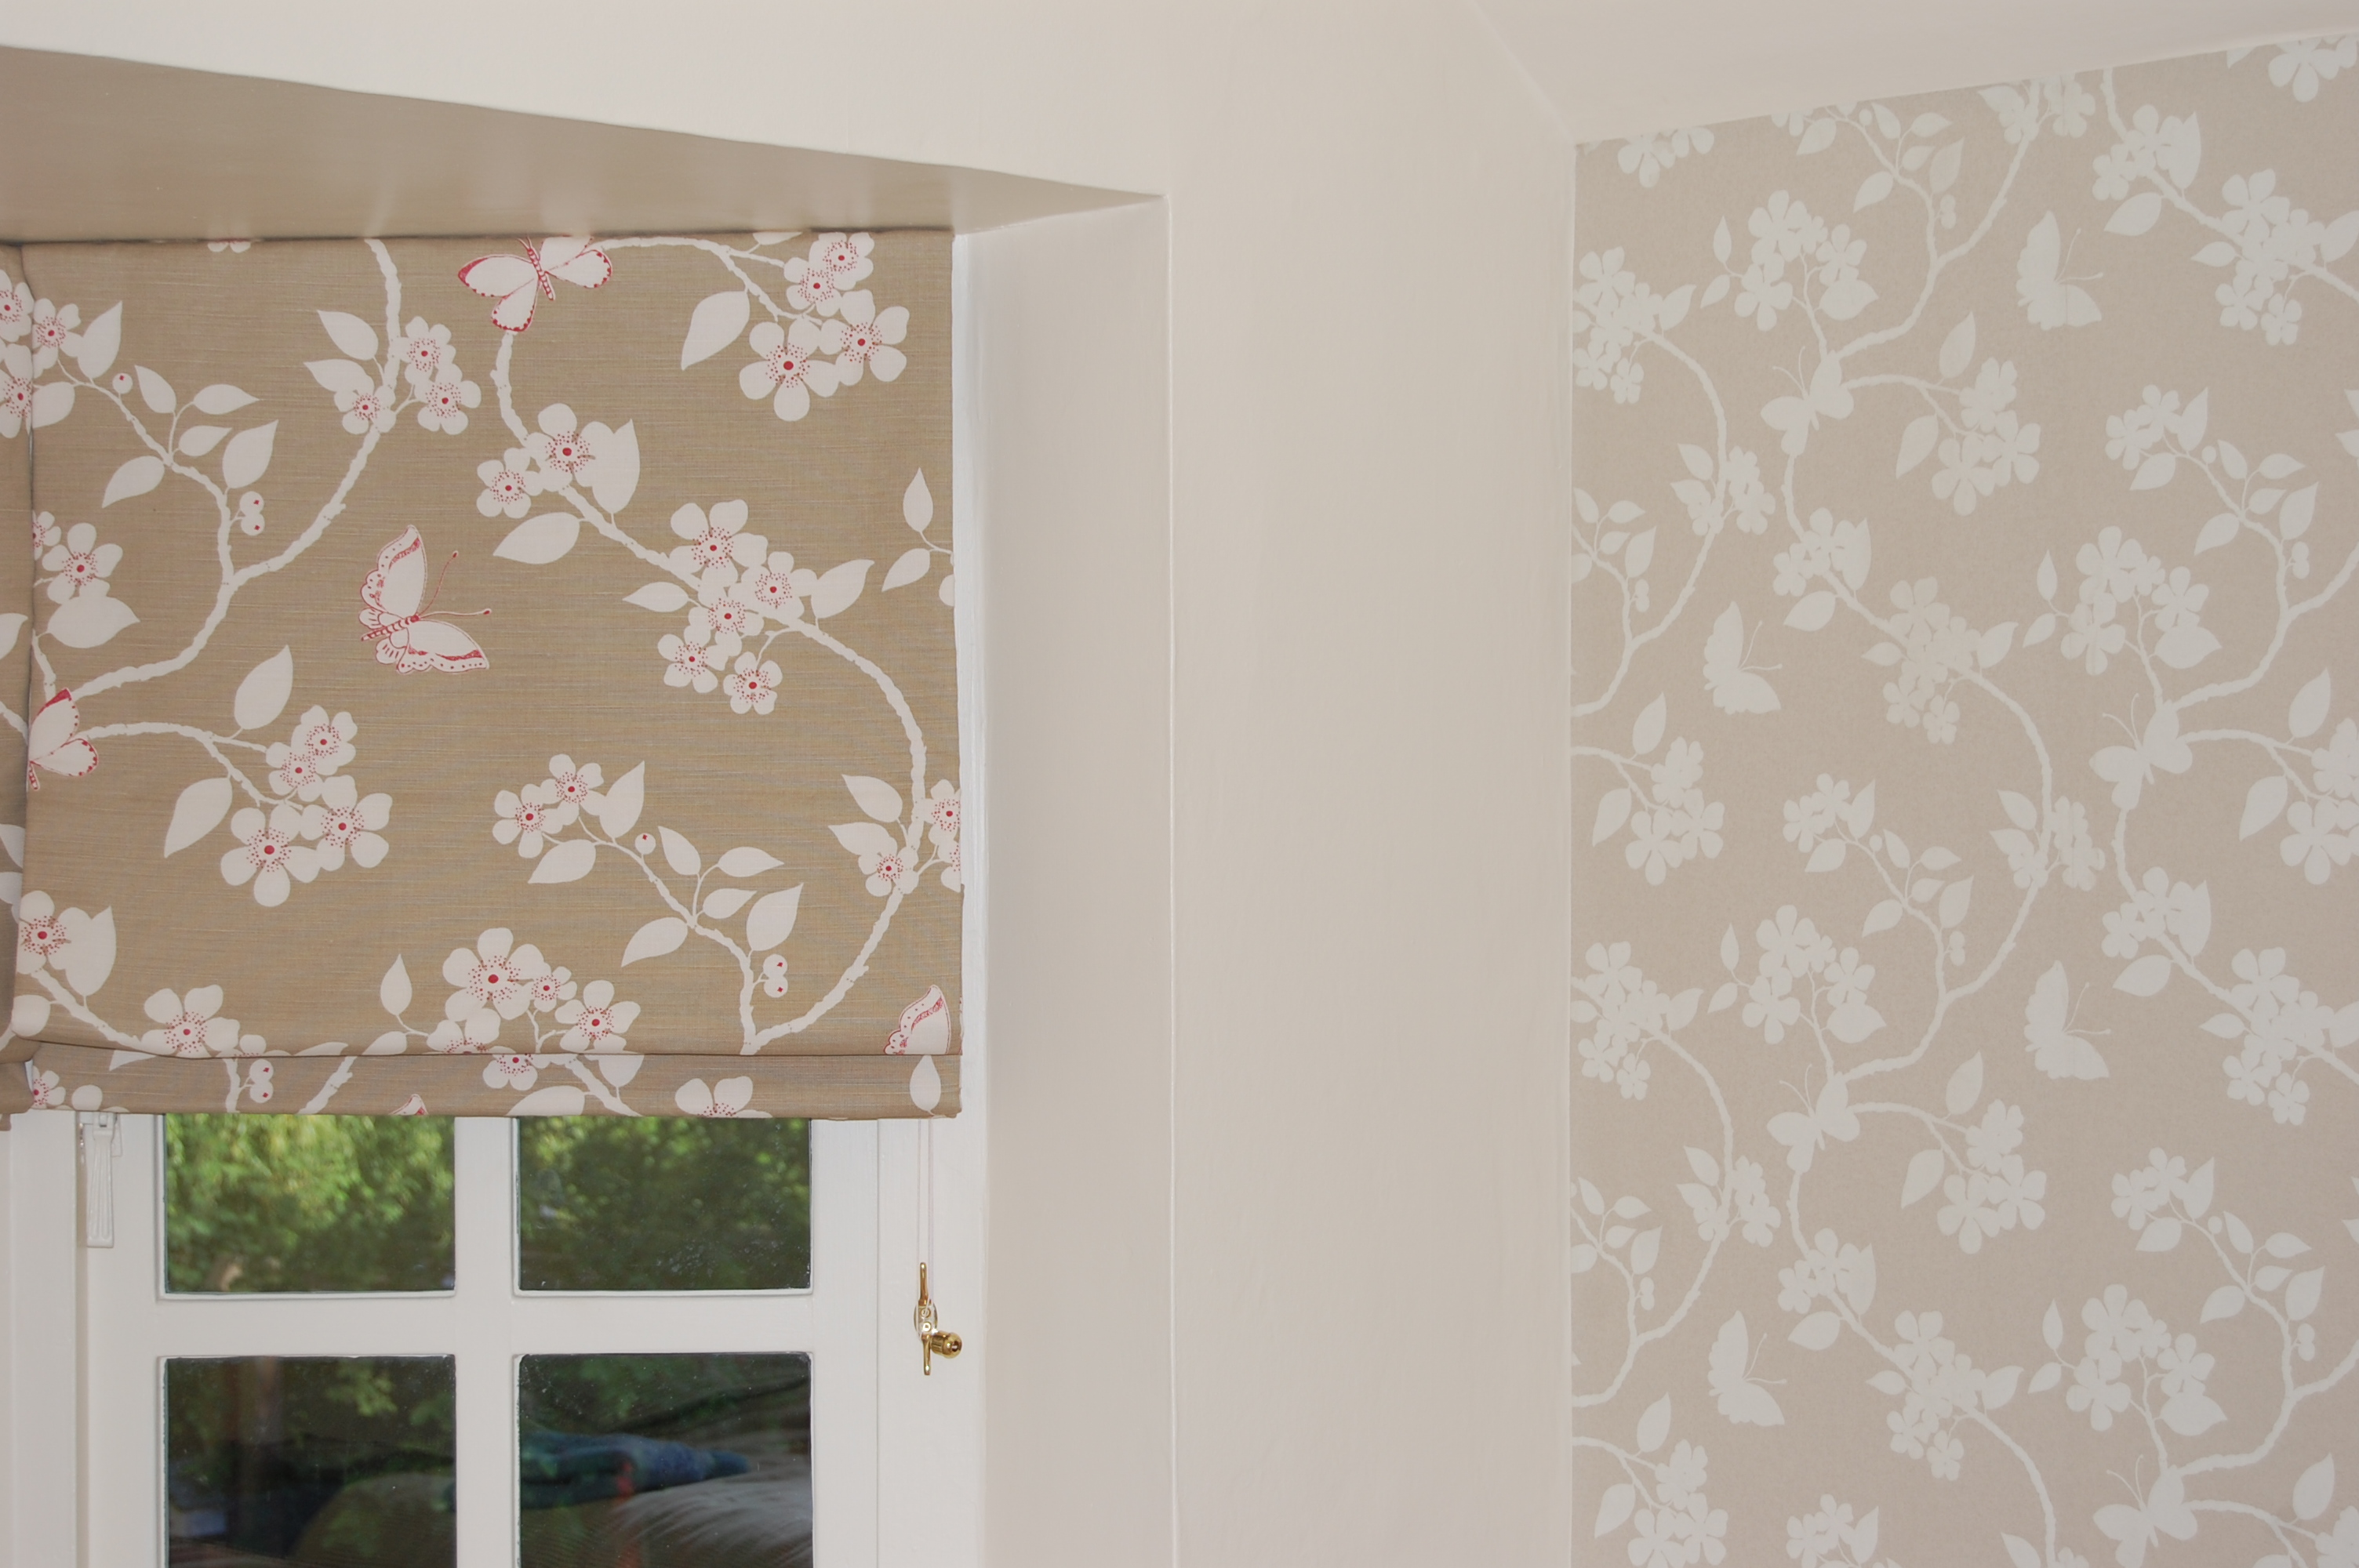 Fabrics often have wallpaper to match or complement the range.